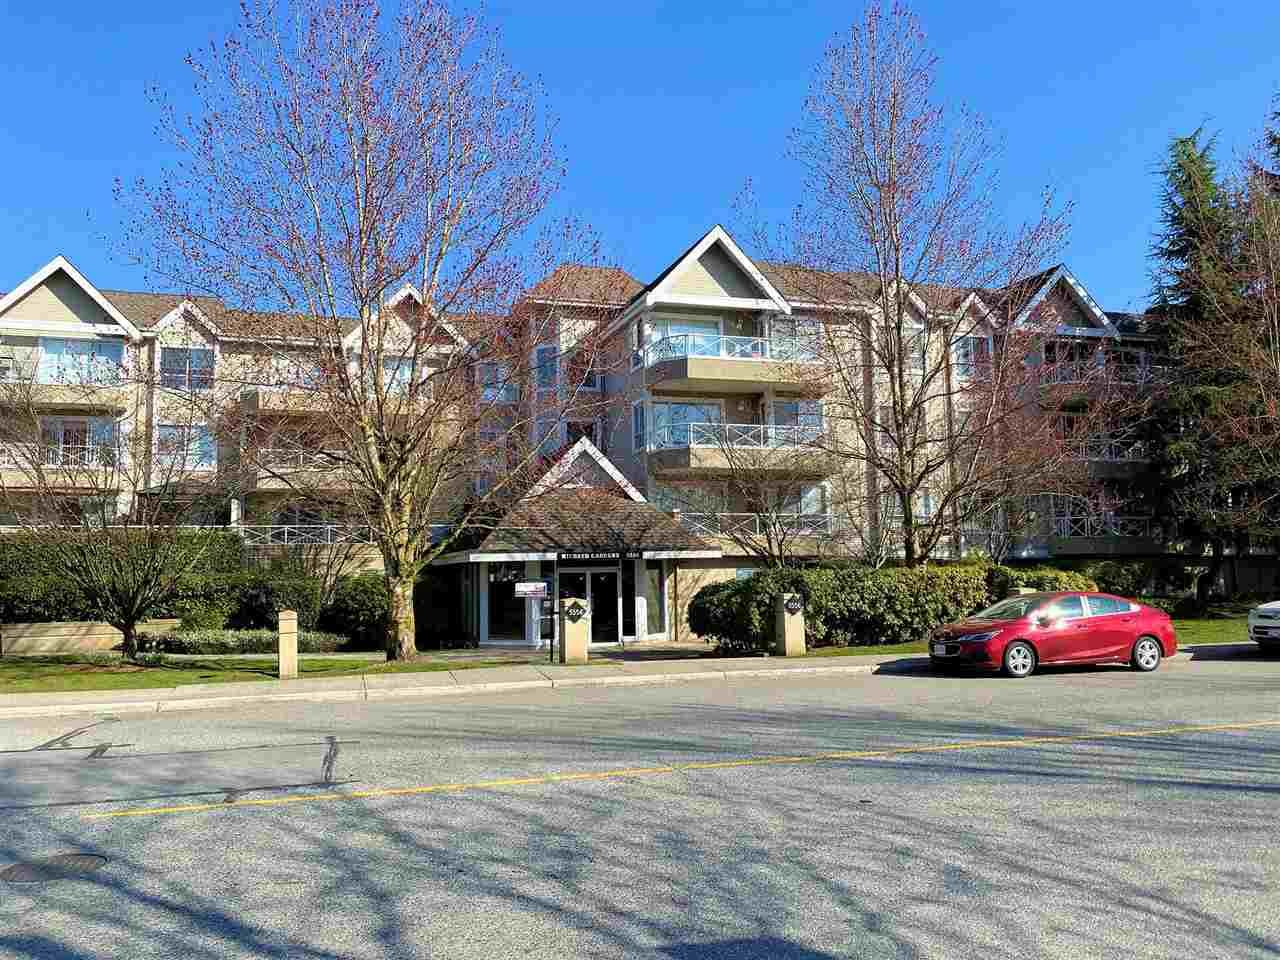 """Main Photo: 204 5556 201A Street in Langley: Langley City Condo for sale in """"Michaud Gardens"""" : MLS®# R2446434"""